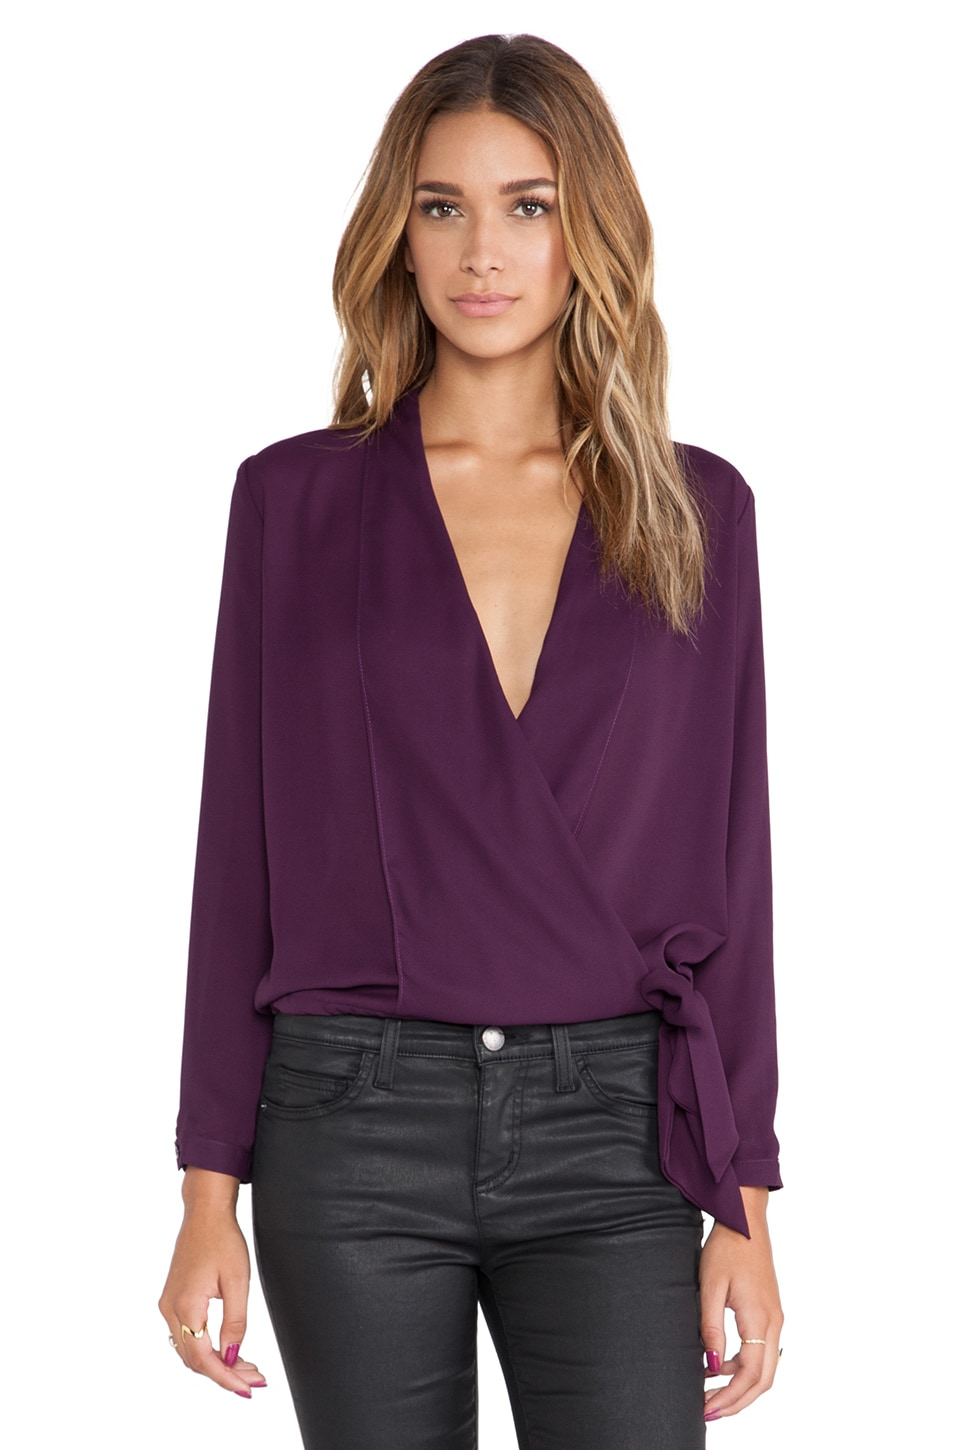 Three Eighty Two Stella Surplice Blouse in Eggplant